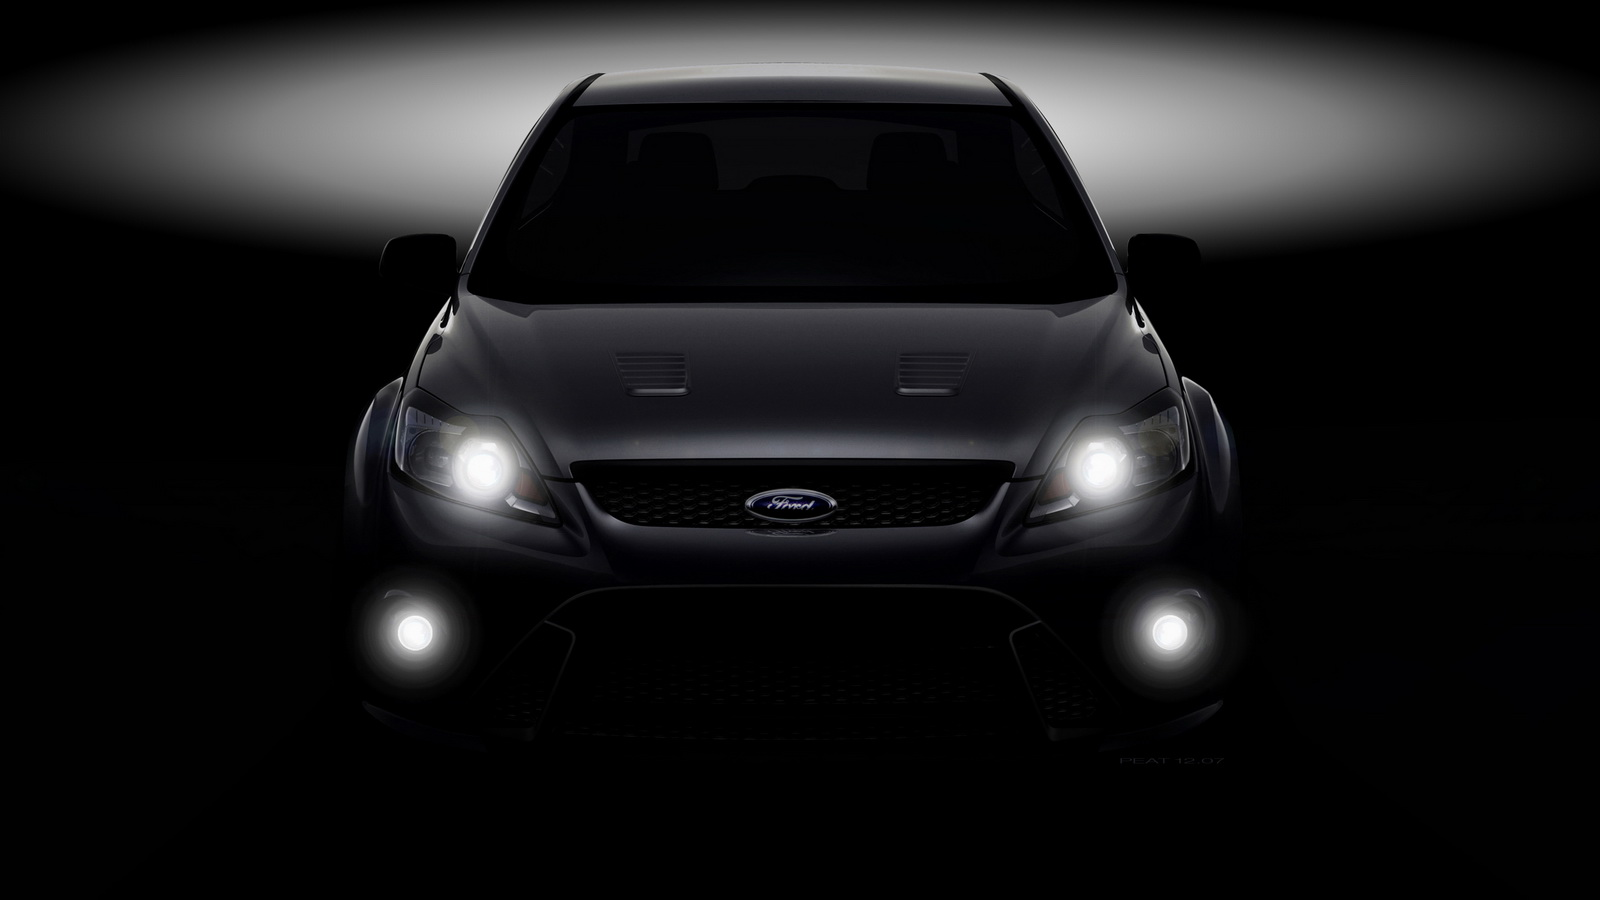 image - ford focus rs teaser-01 | the car wallpaper mania wiki